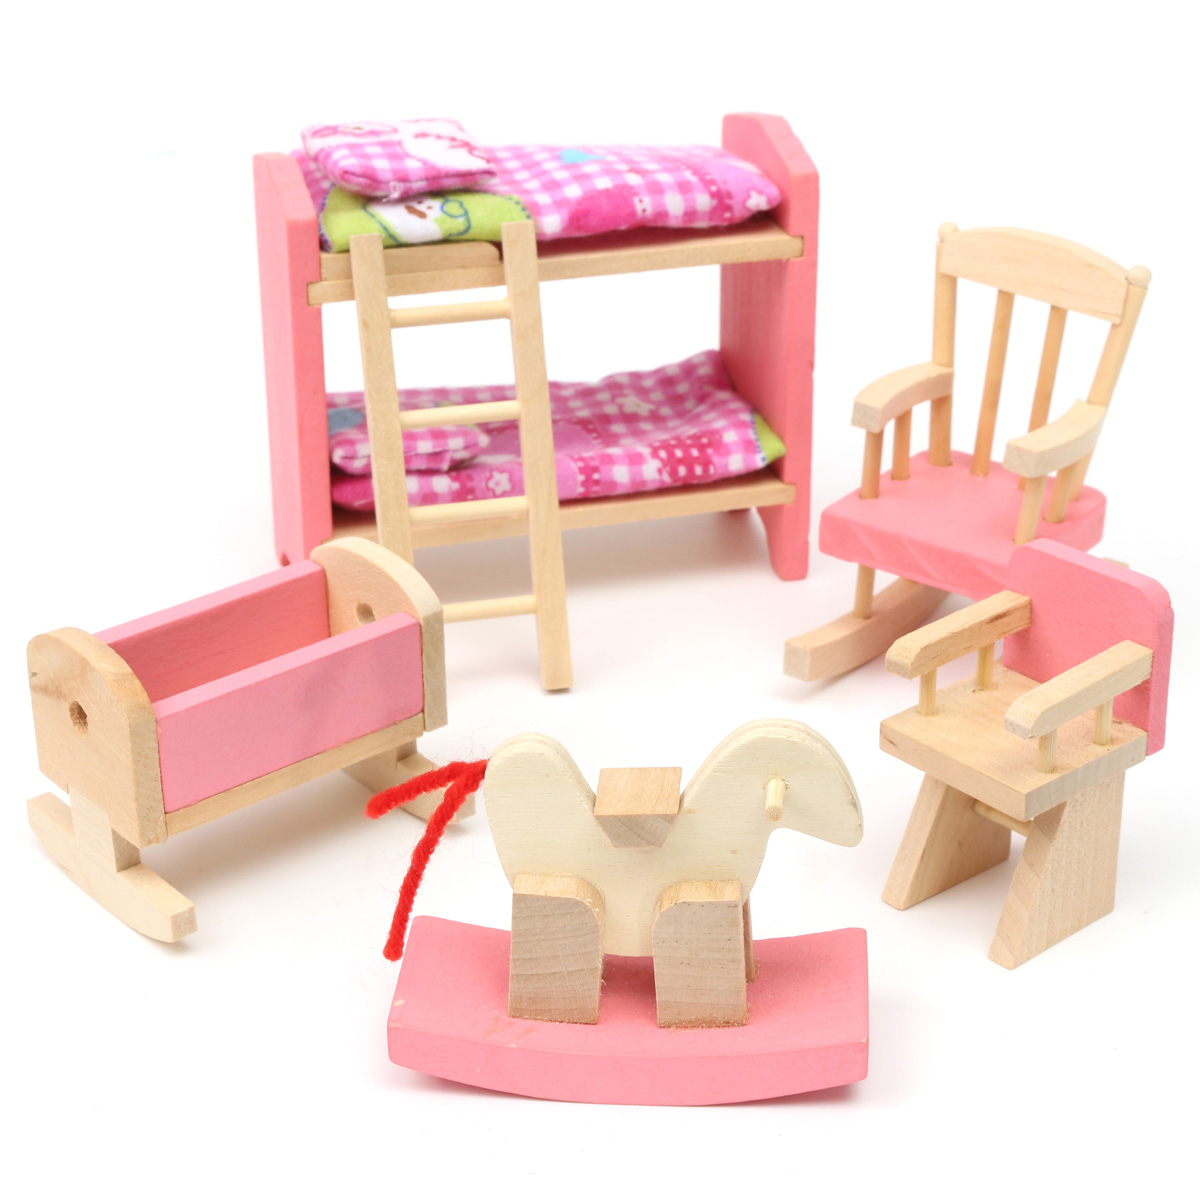 Wooden Furniture Room Set Dolls House Family Miniature For